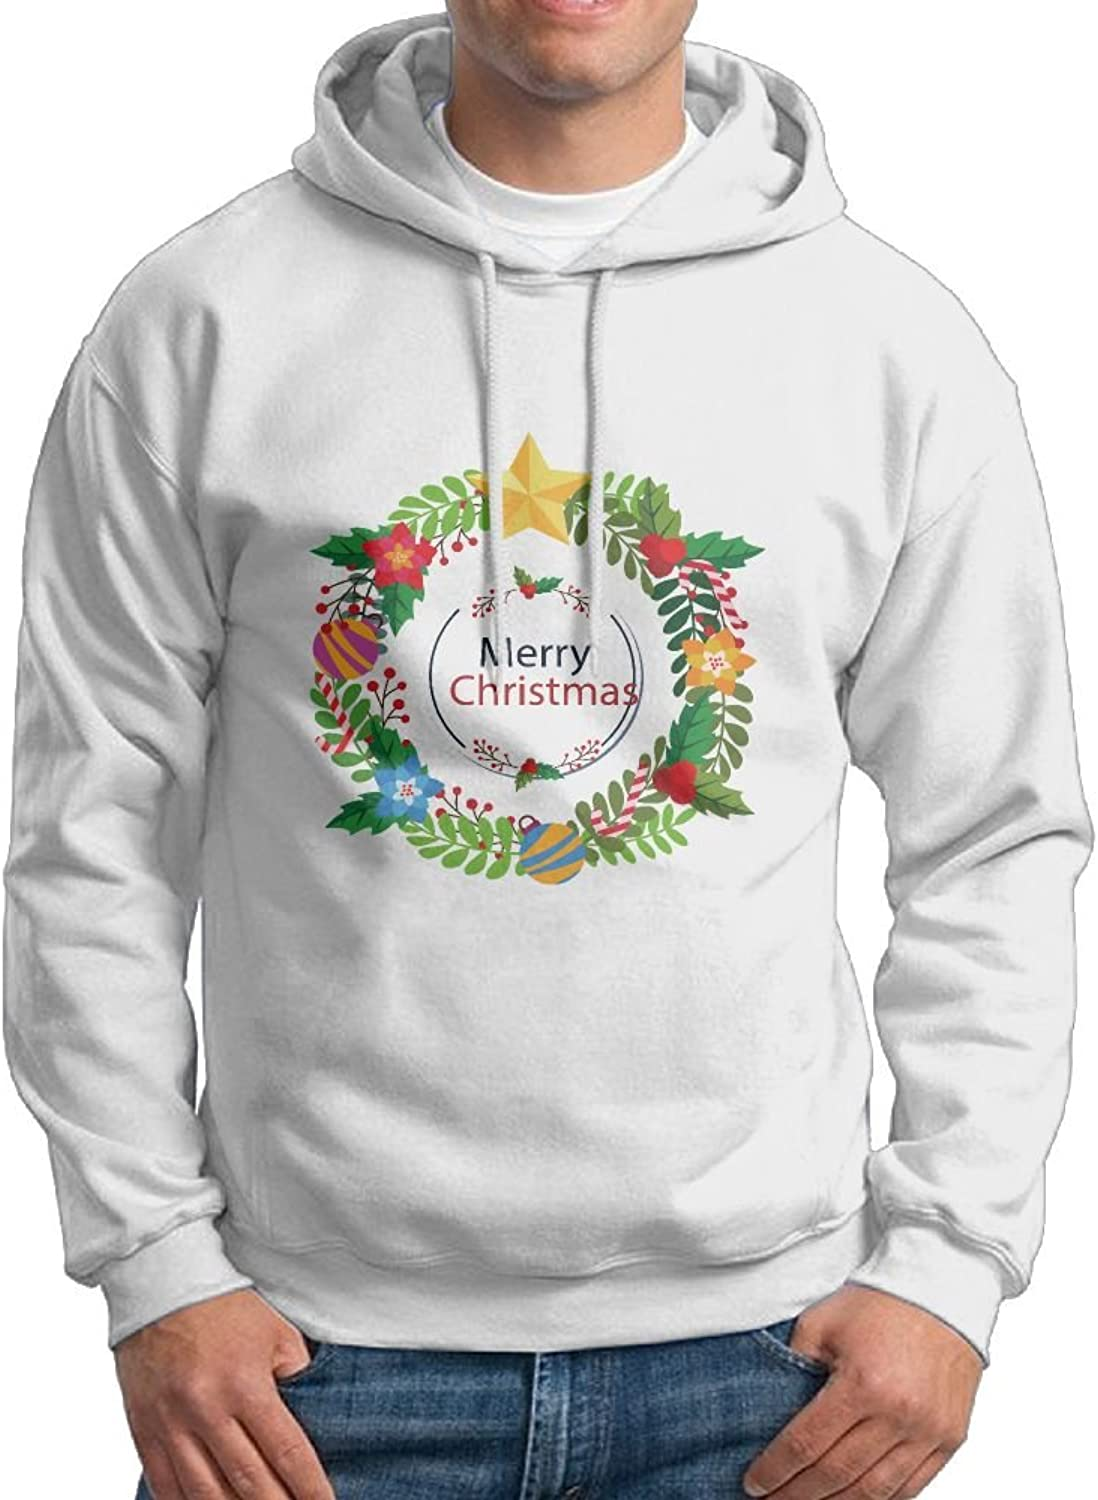 Fashion Men's Athletic Merry Christmas Wreath Print Soft & Cozy Drawstring Sweatshirt Without Pocket Casual Hoodie White